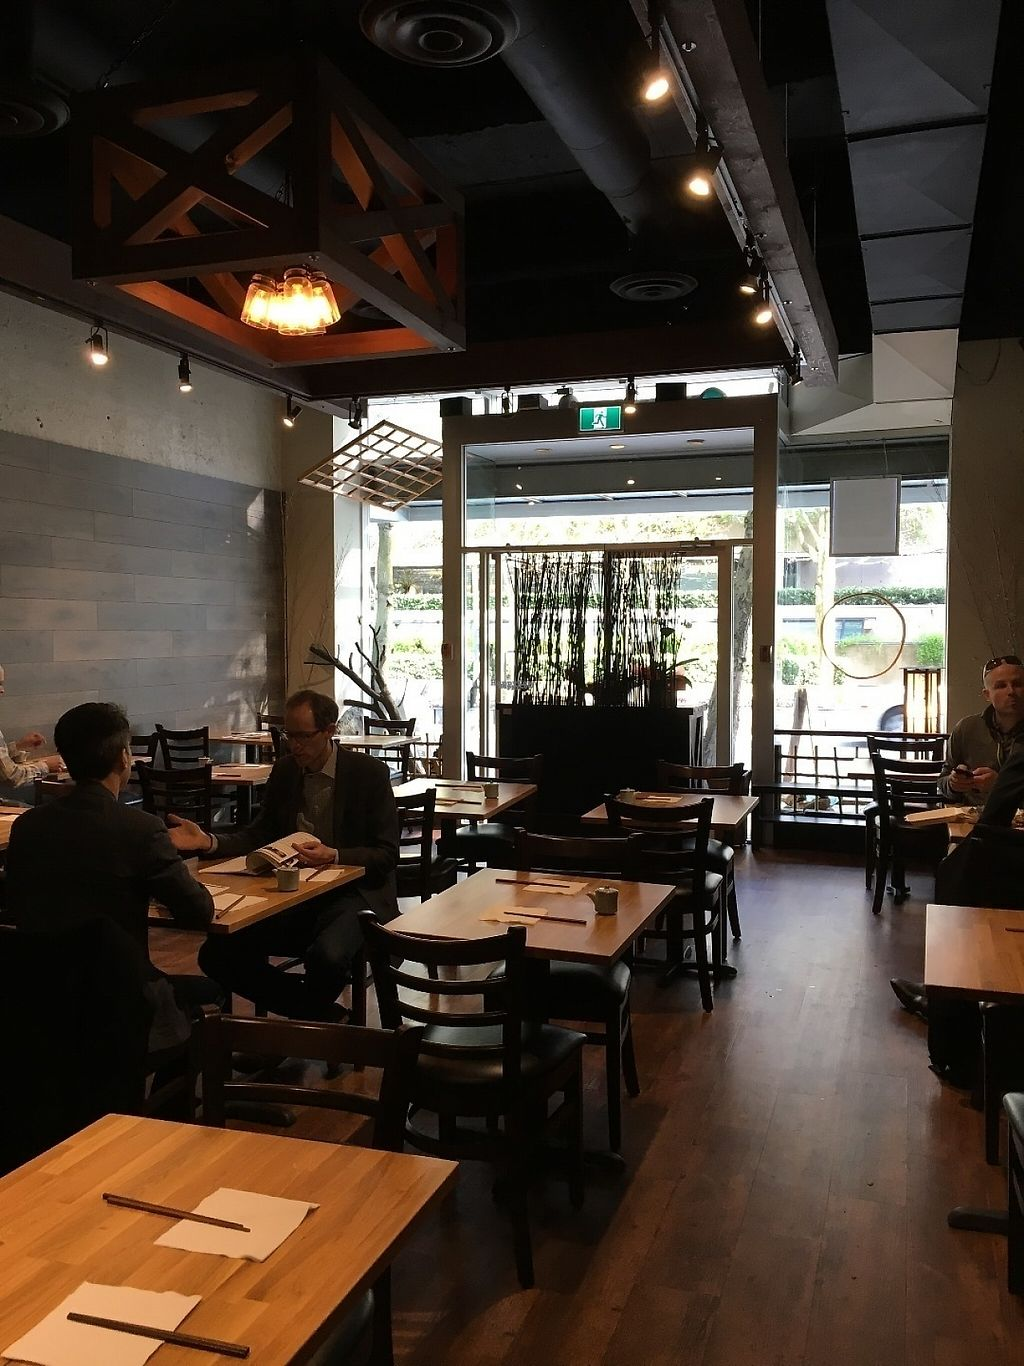 """Photo of Shizenya - Downtown  by <a href=""""/members/profile/vegan%20frog"""">vegan frog</a> <br/>Inside <br/> April 29, 2017  - <a href='/contact/abuse/image/87440/253831'>Report</a>"""